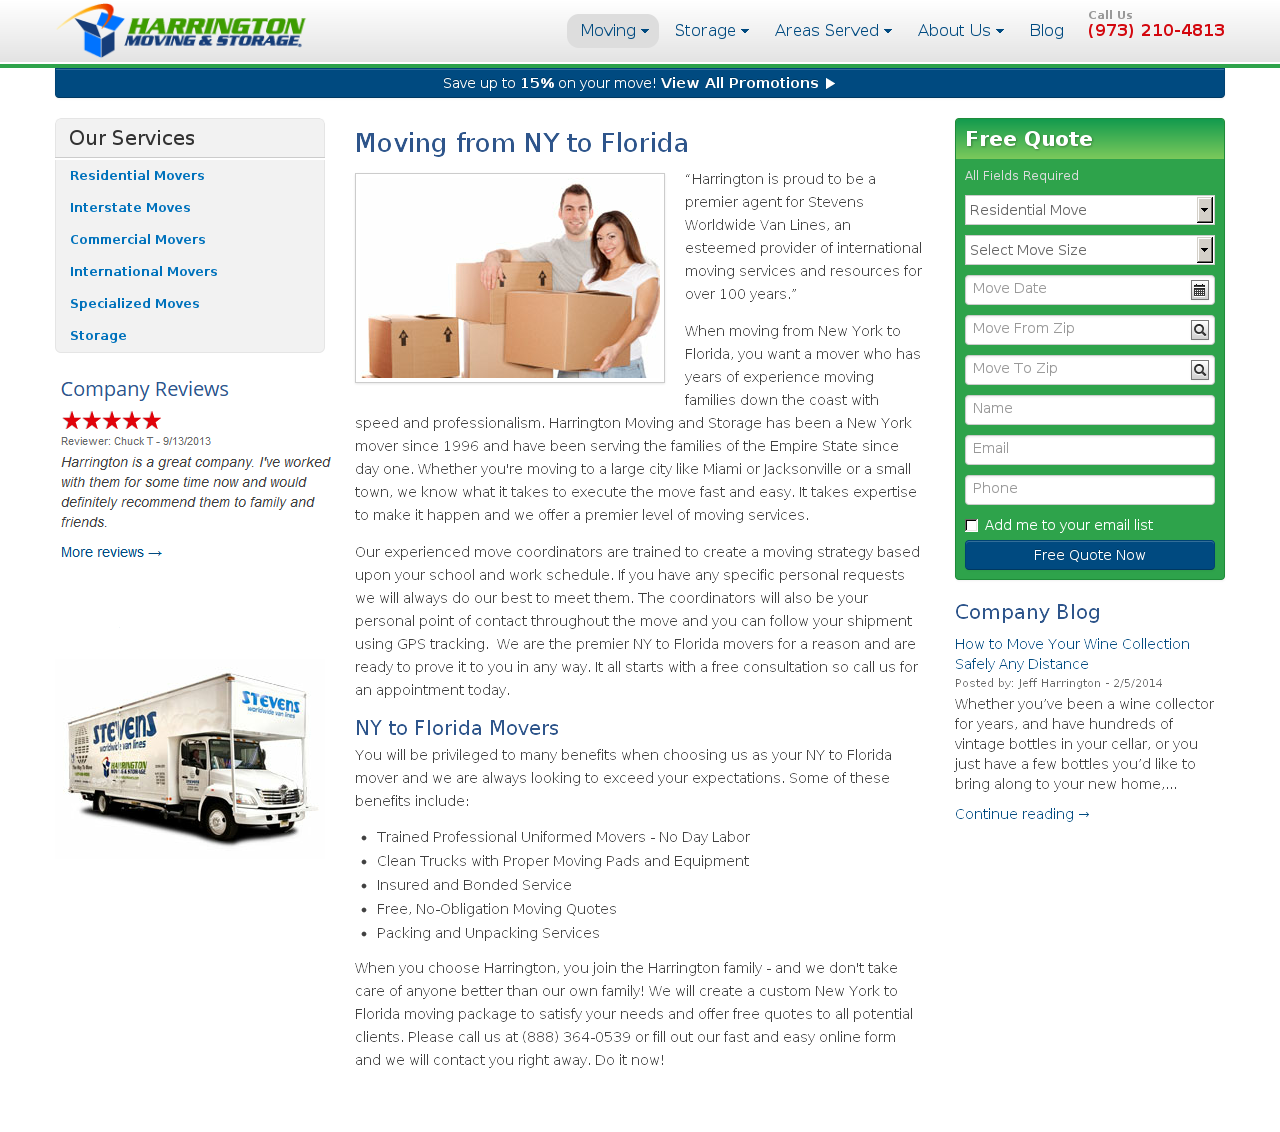 Harrington Movers Control Page